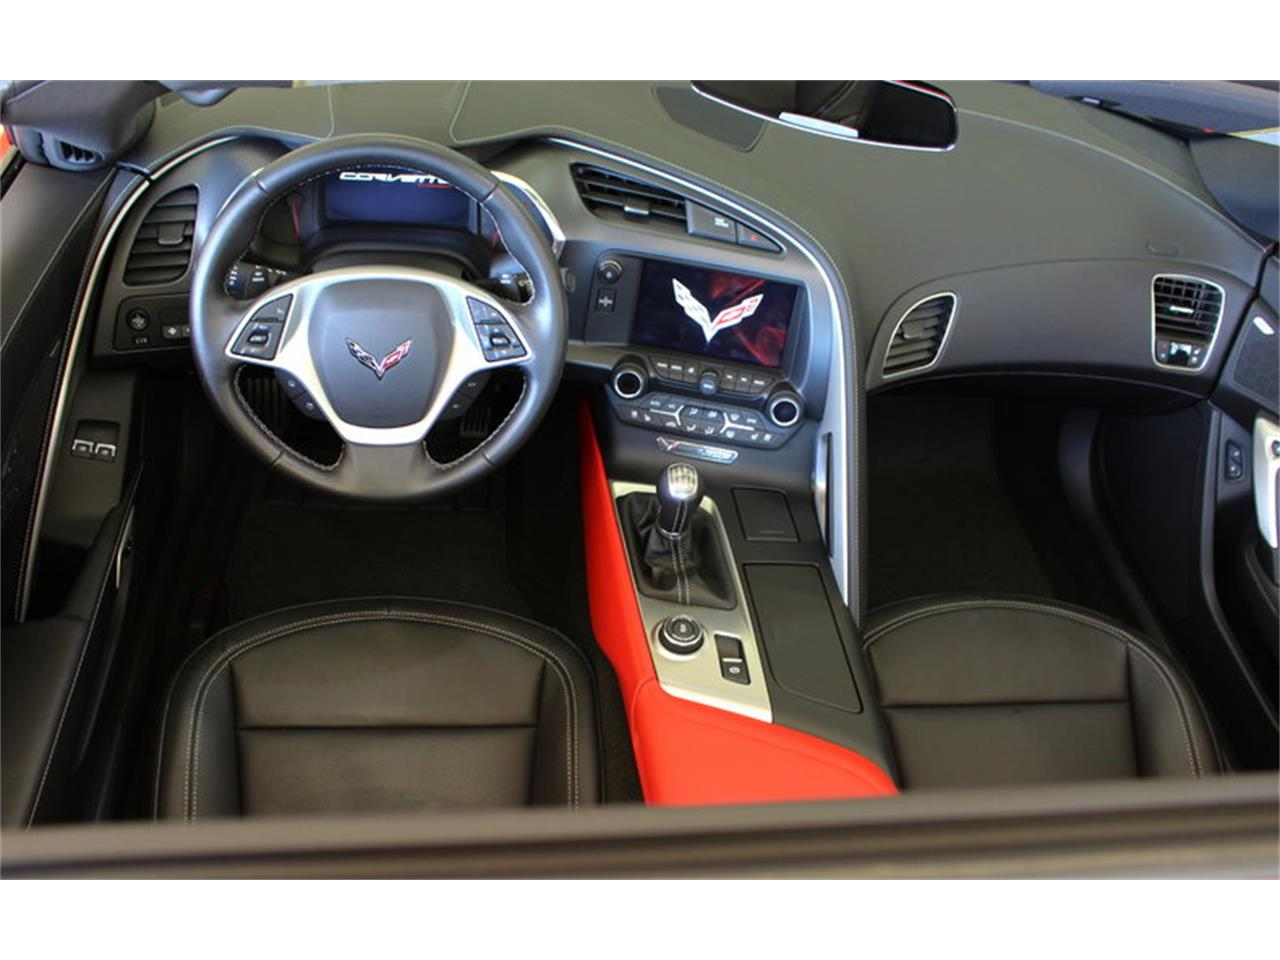 Large Picture of 2014 Chevrolet Corvette - $49,990.00 - MGRV